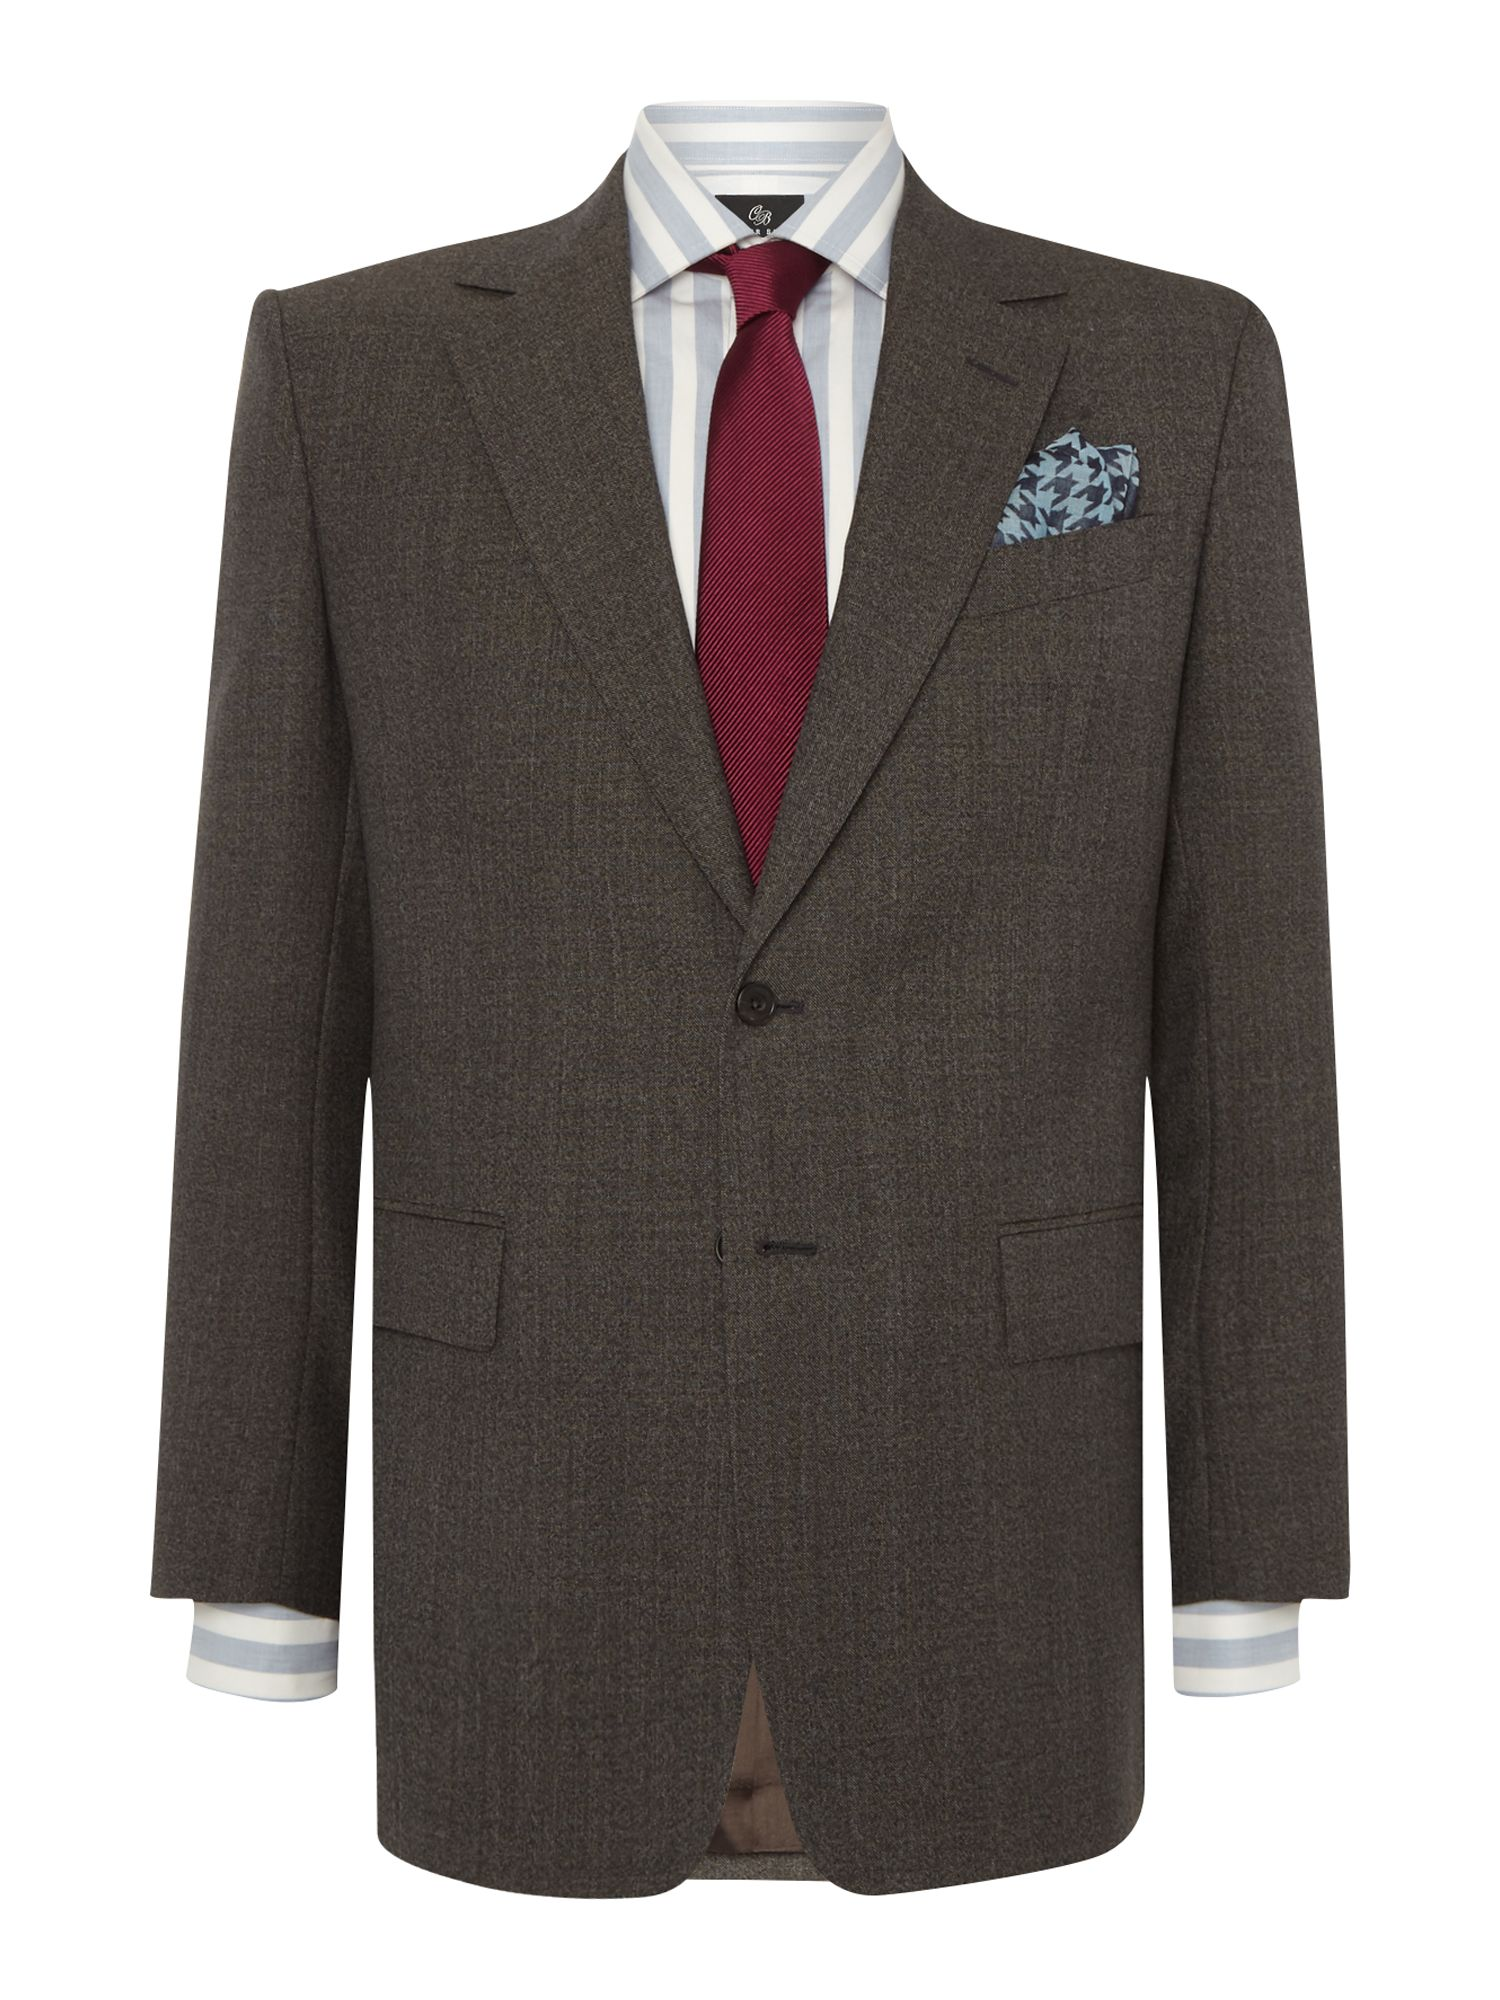 Men's Chester Barrie Burlington Sharkskin Suit, Brown